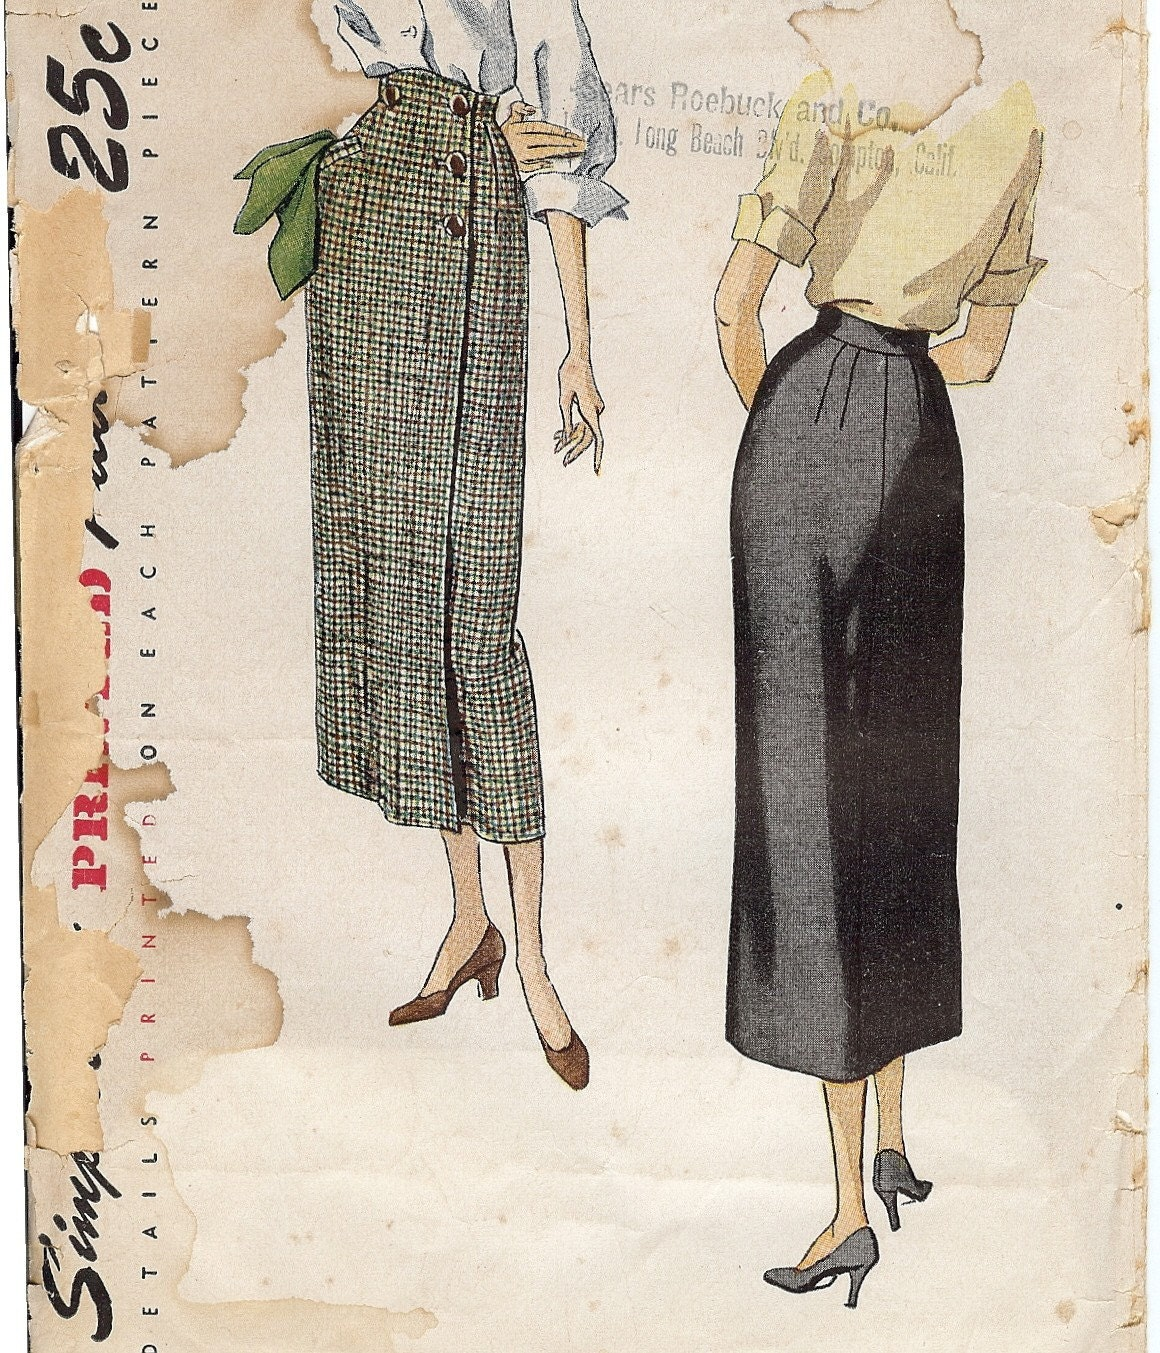 Sewing pattern dating .35 cents